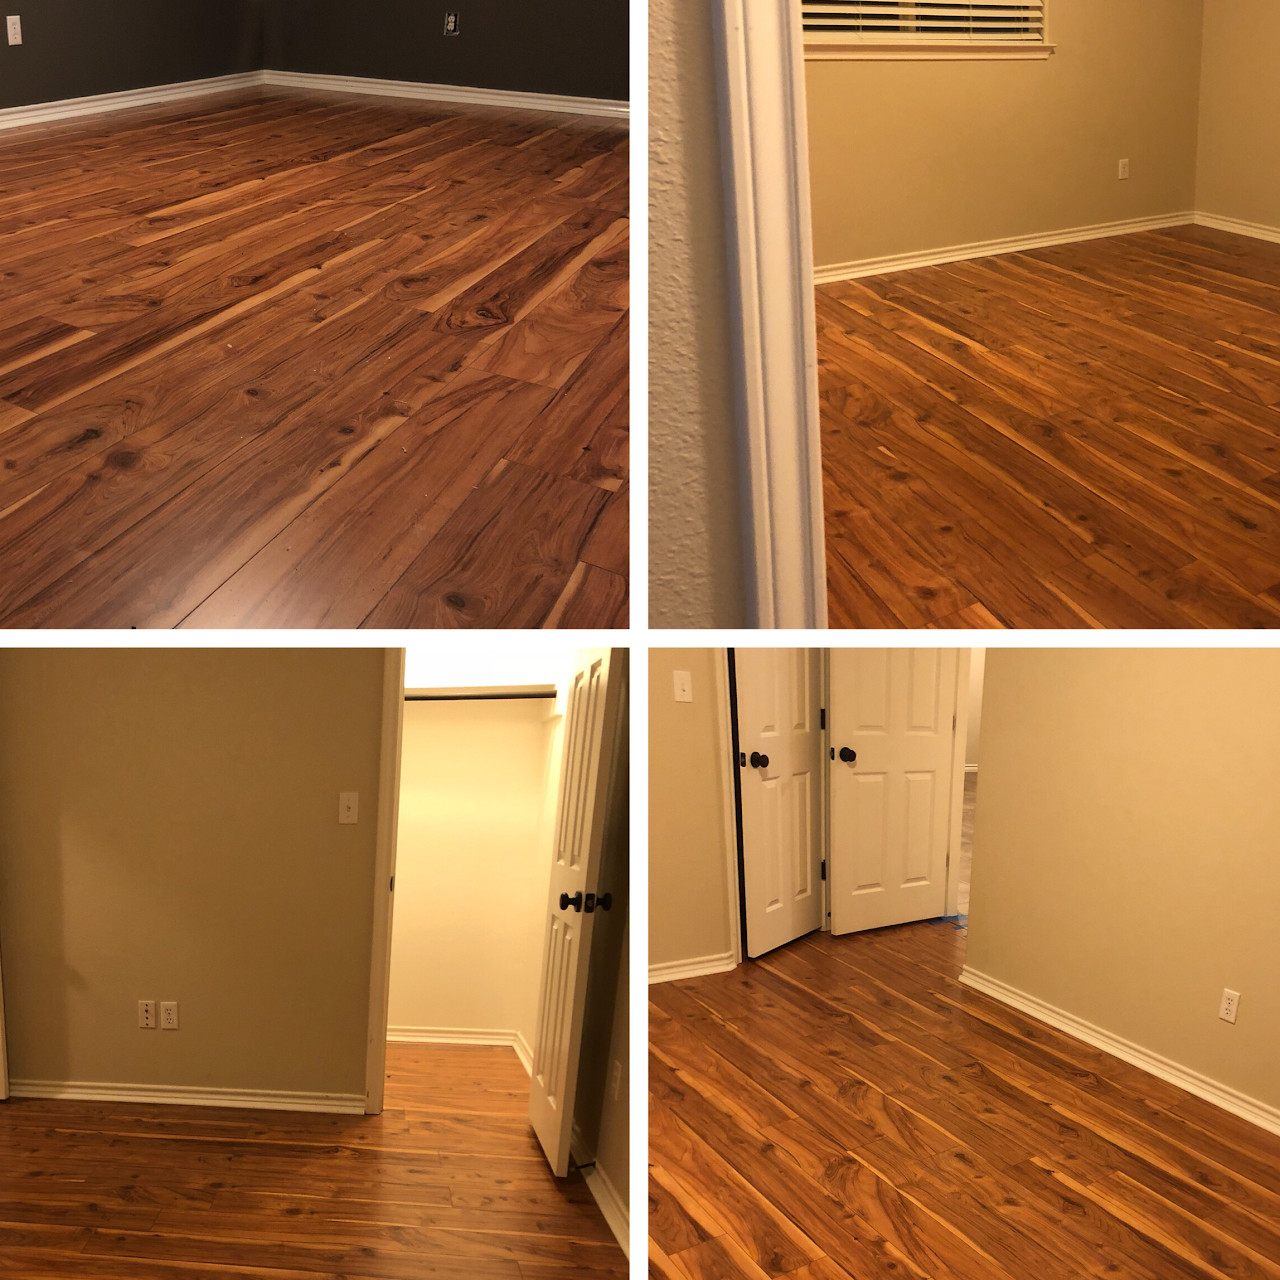 hardwood floor refinishing wayne nj of marks floor covering flooring contractor in corpus christi with out with the carpet in with